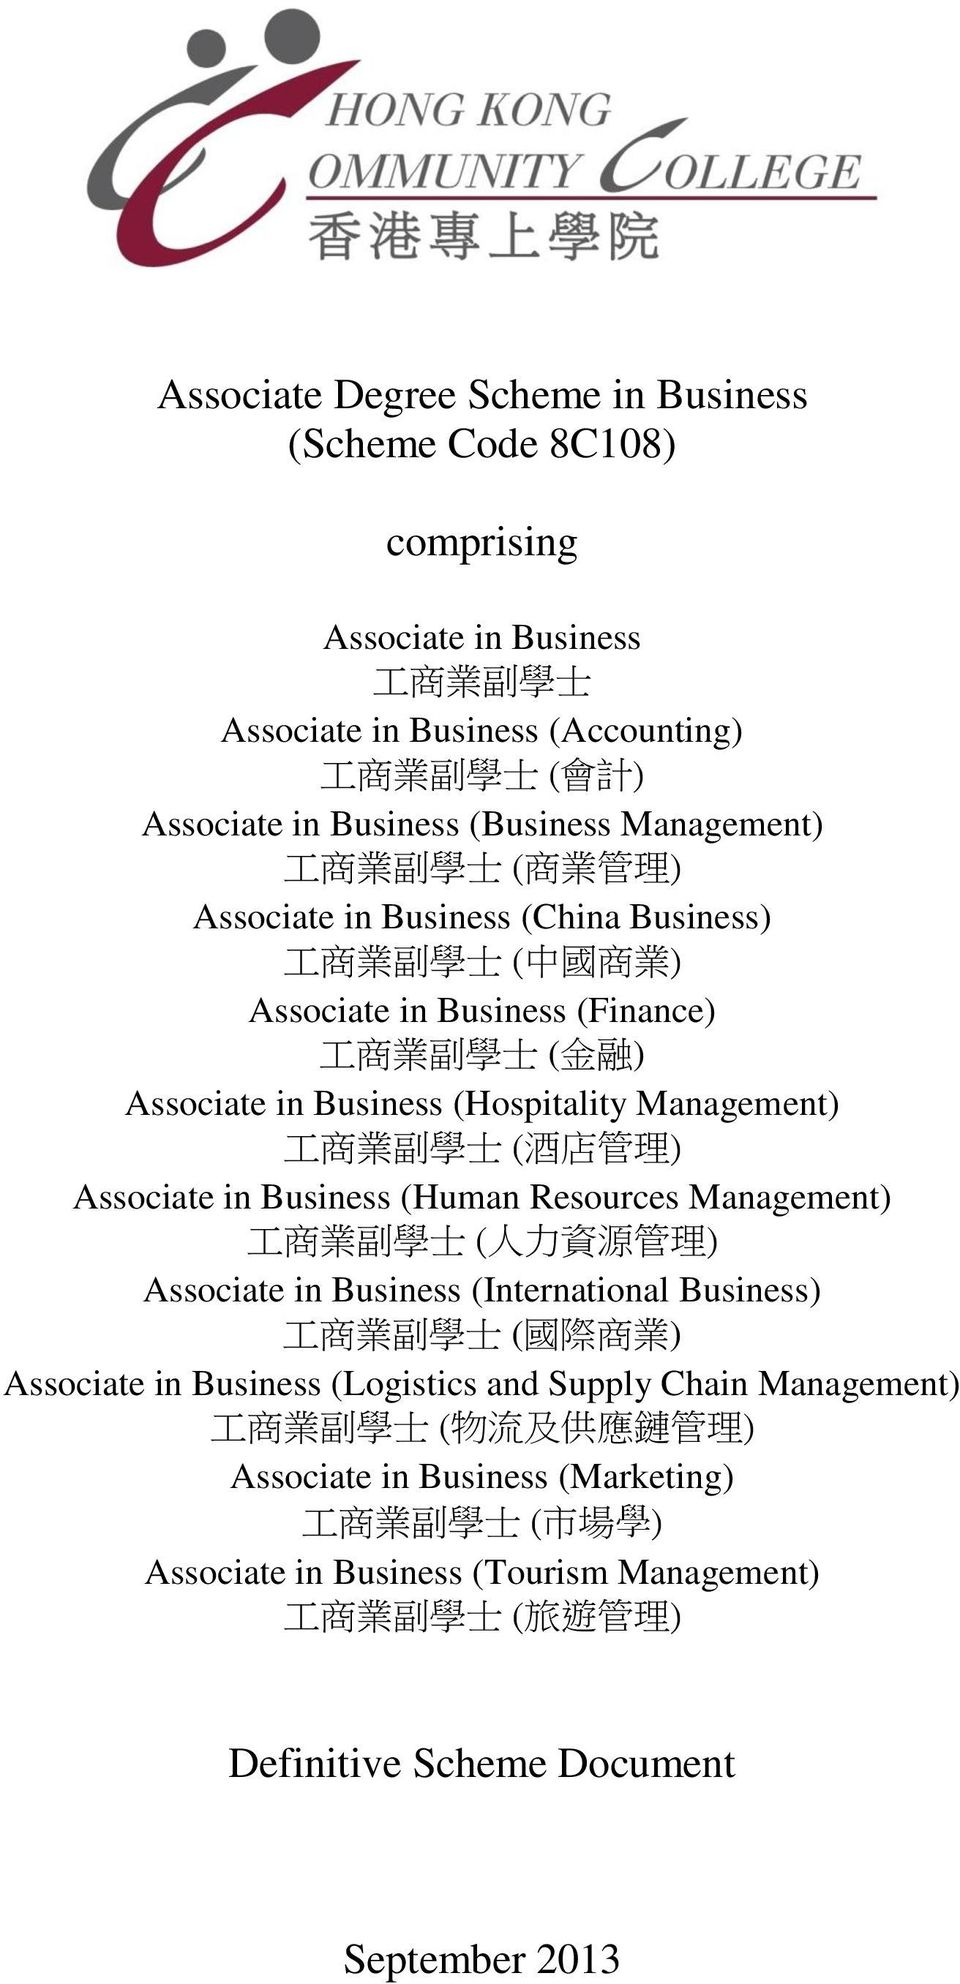 酒 店 管 理 ) Associate in Business (Human Resources Management) 工 商 業 副 學 士 ( 人 力 資 源 管 理 ) Associate in Business (International Business) 工 商 業 副 學 士 ( 國 際 商 業 ) Associate in Business (Logistics and